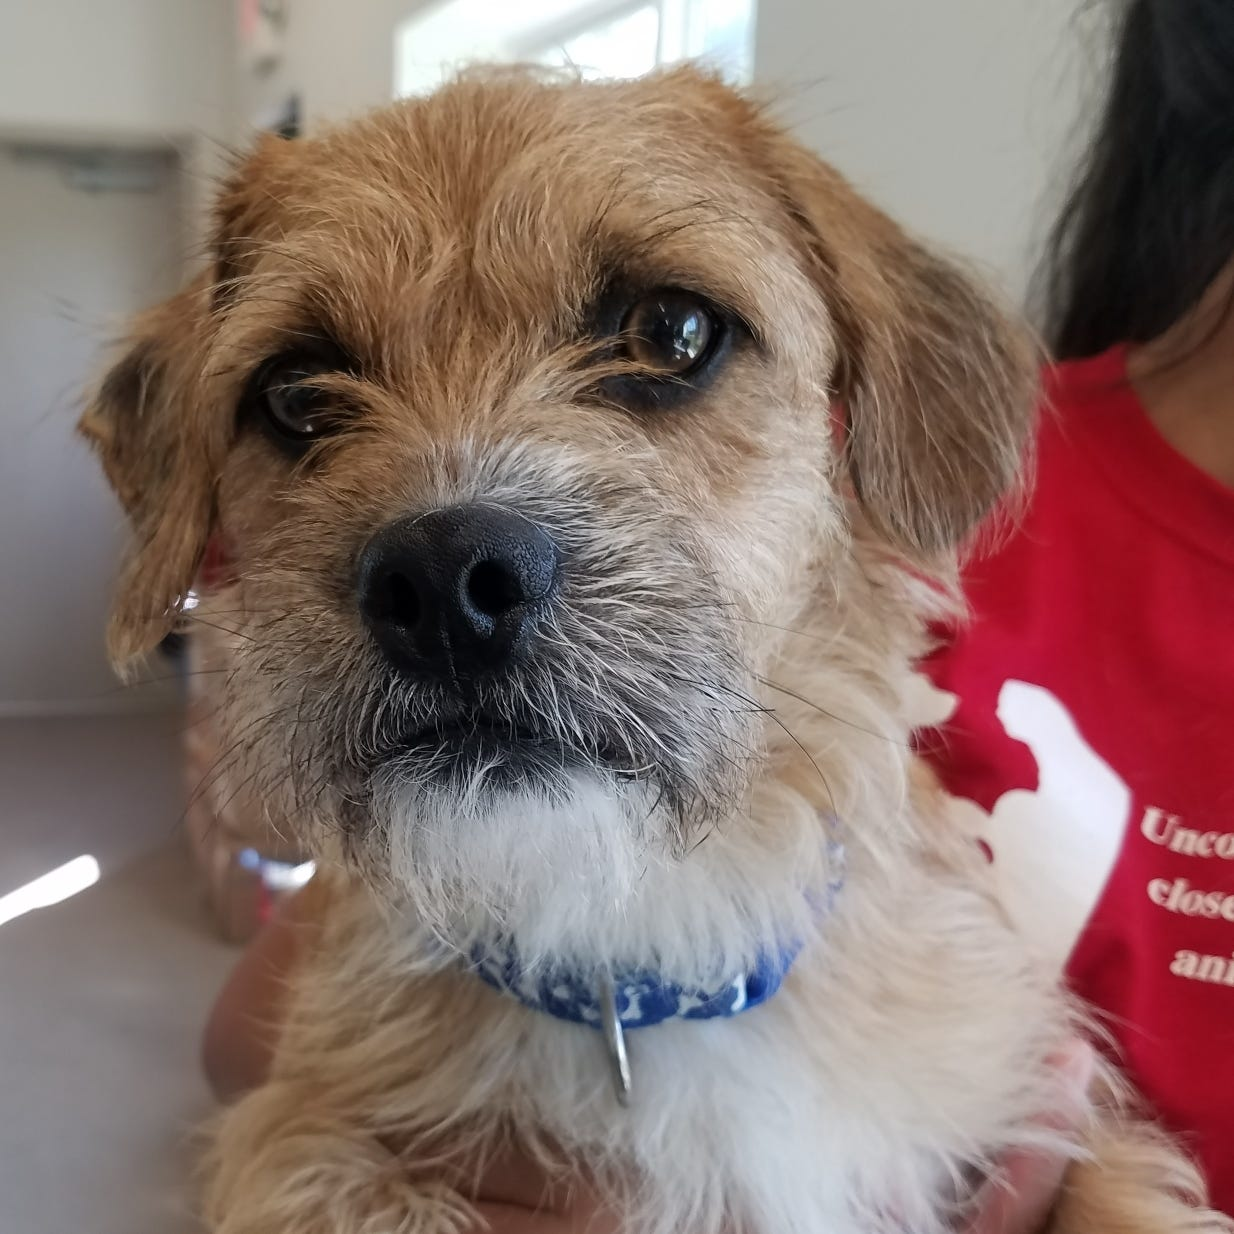 Ask the shelter: Can my dog get lice?